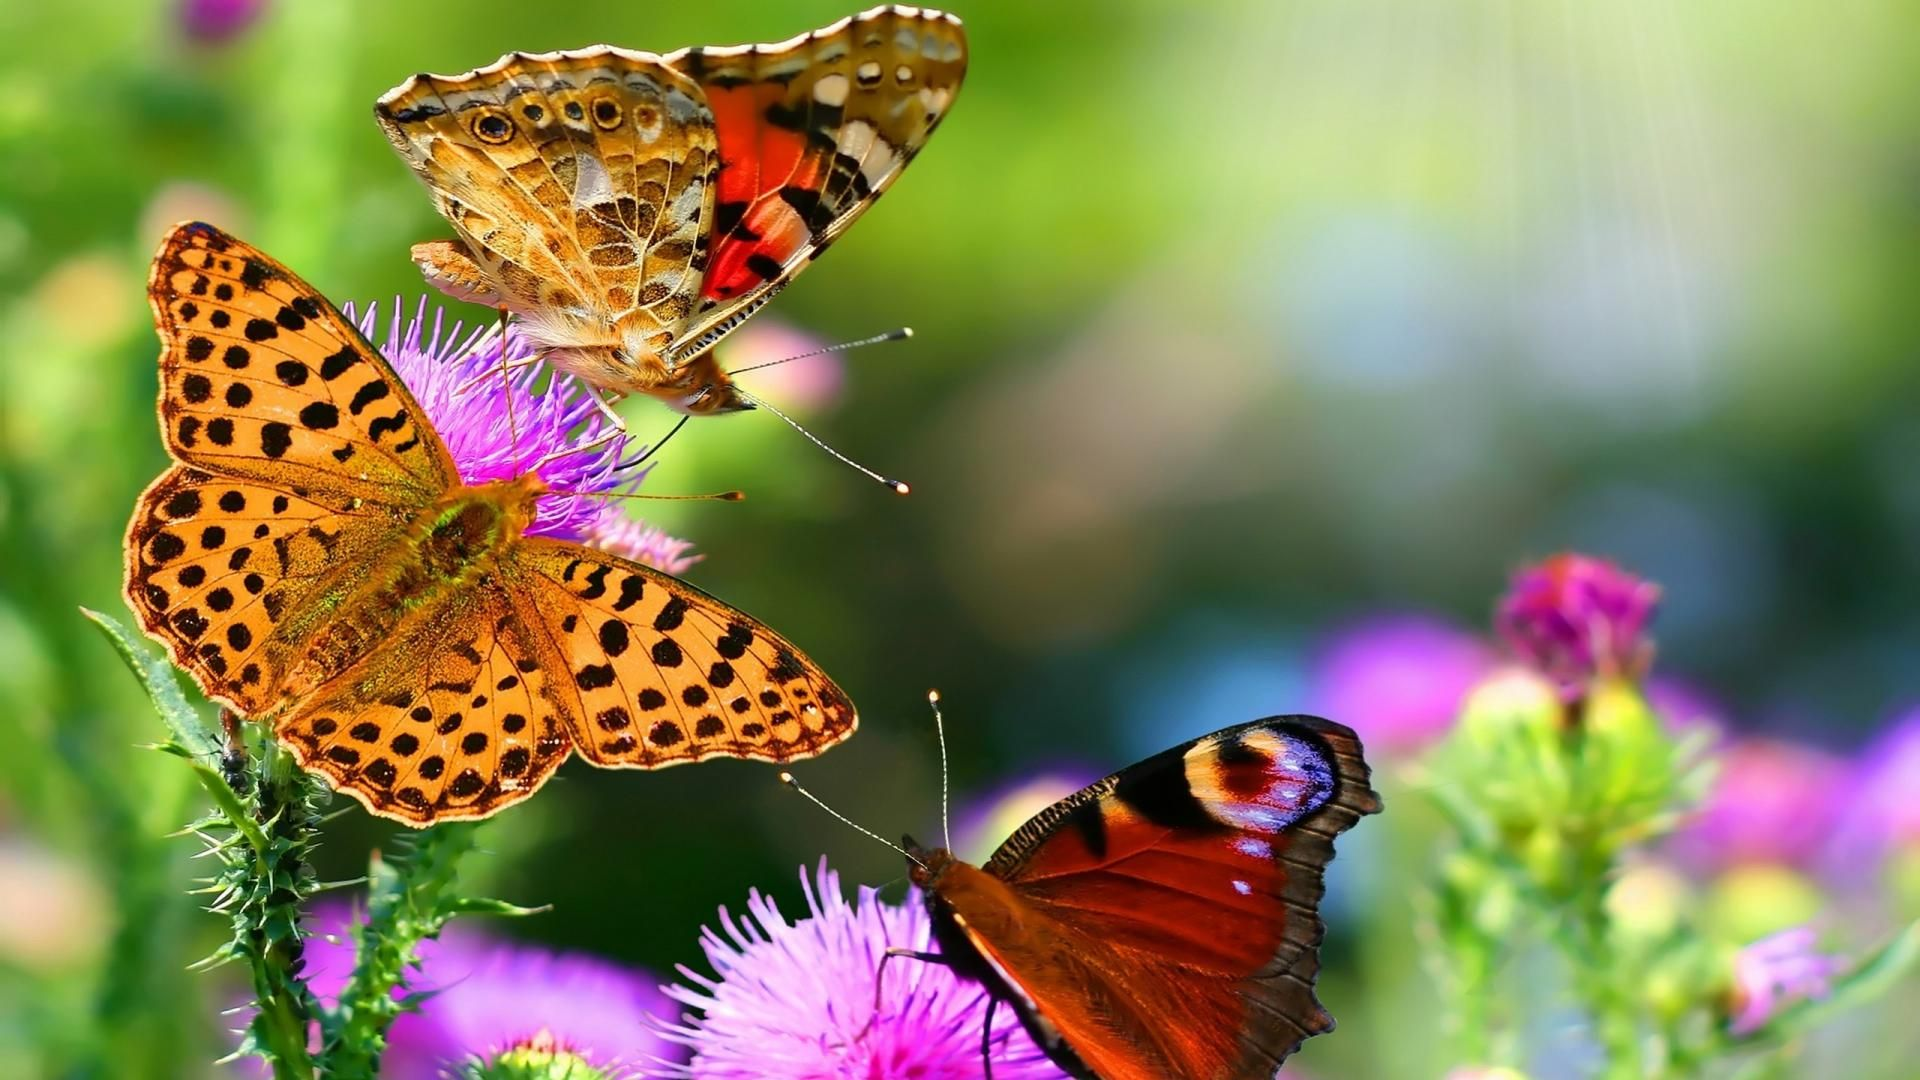 Pictures Of Butterflies Are Beautiful